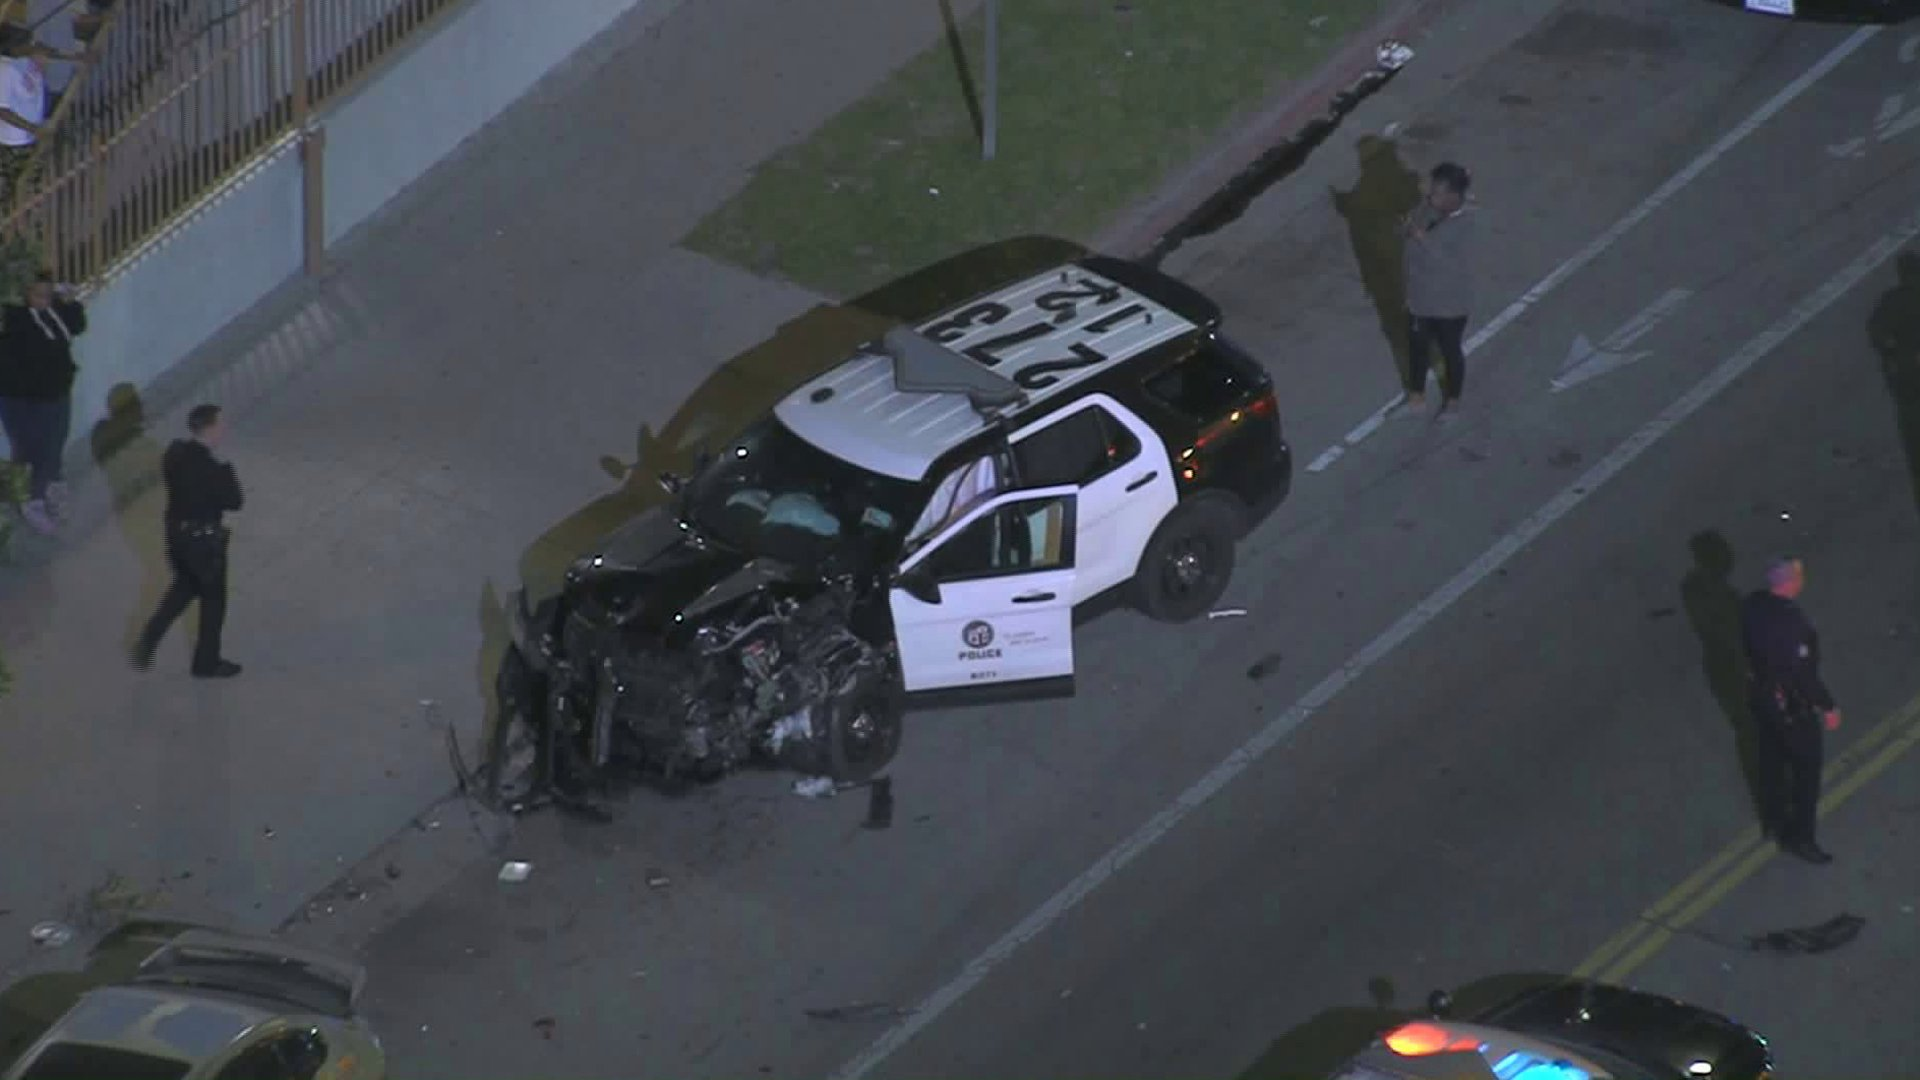 A Los Angeles Police Department SUV that sustained significant damages in a crash is seen in South L.A.'s Florence neighborhood on Jan. 31, 2020. (Credit: Sky5)